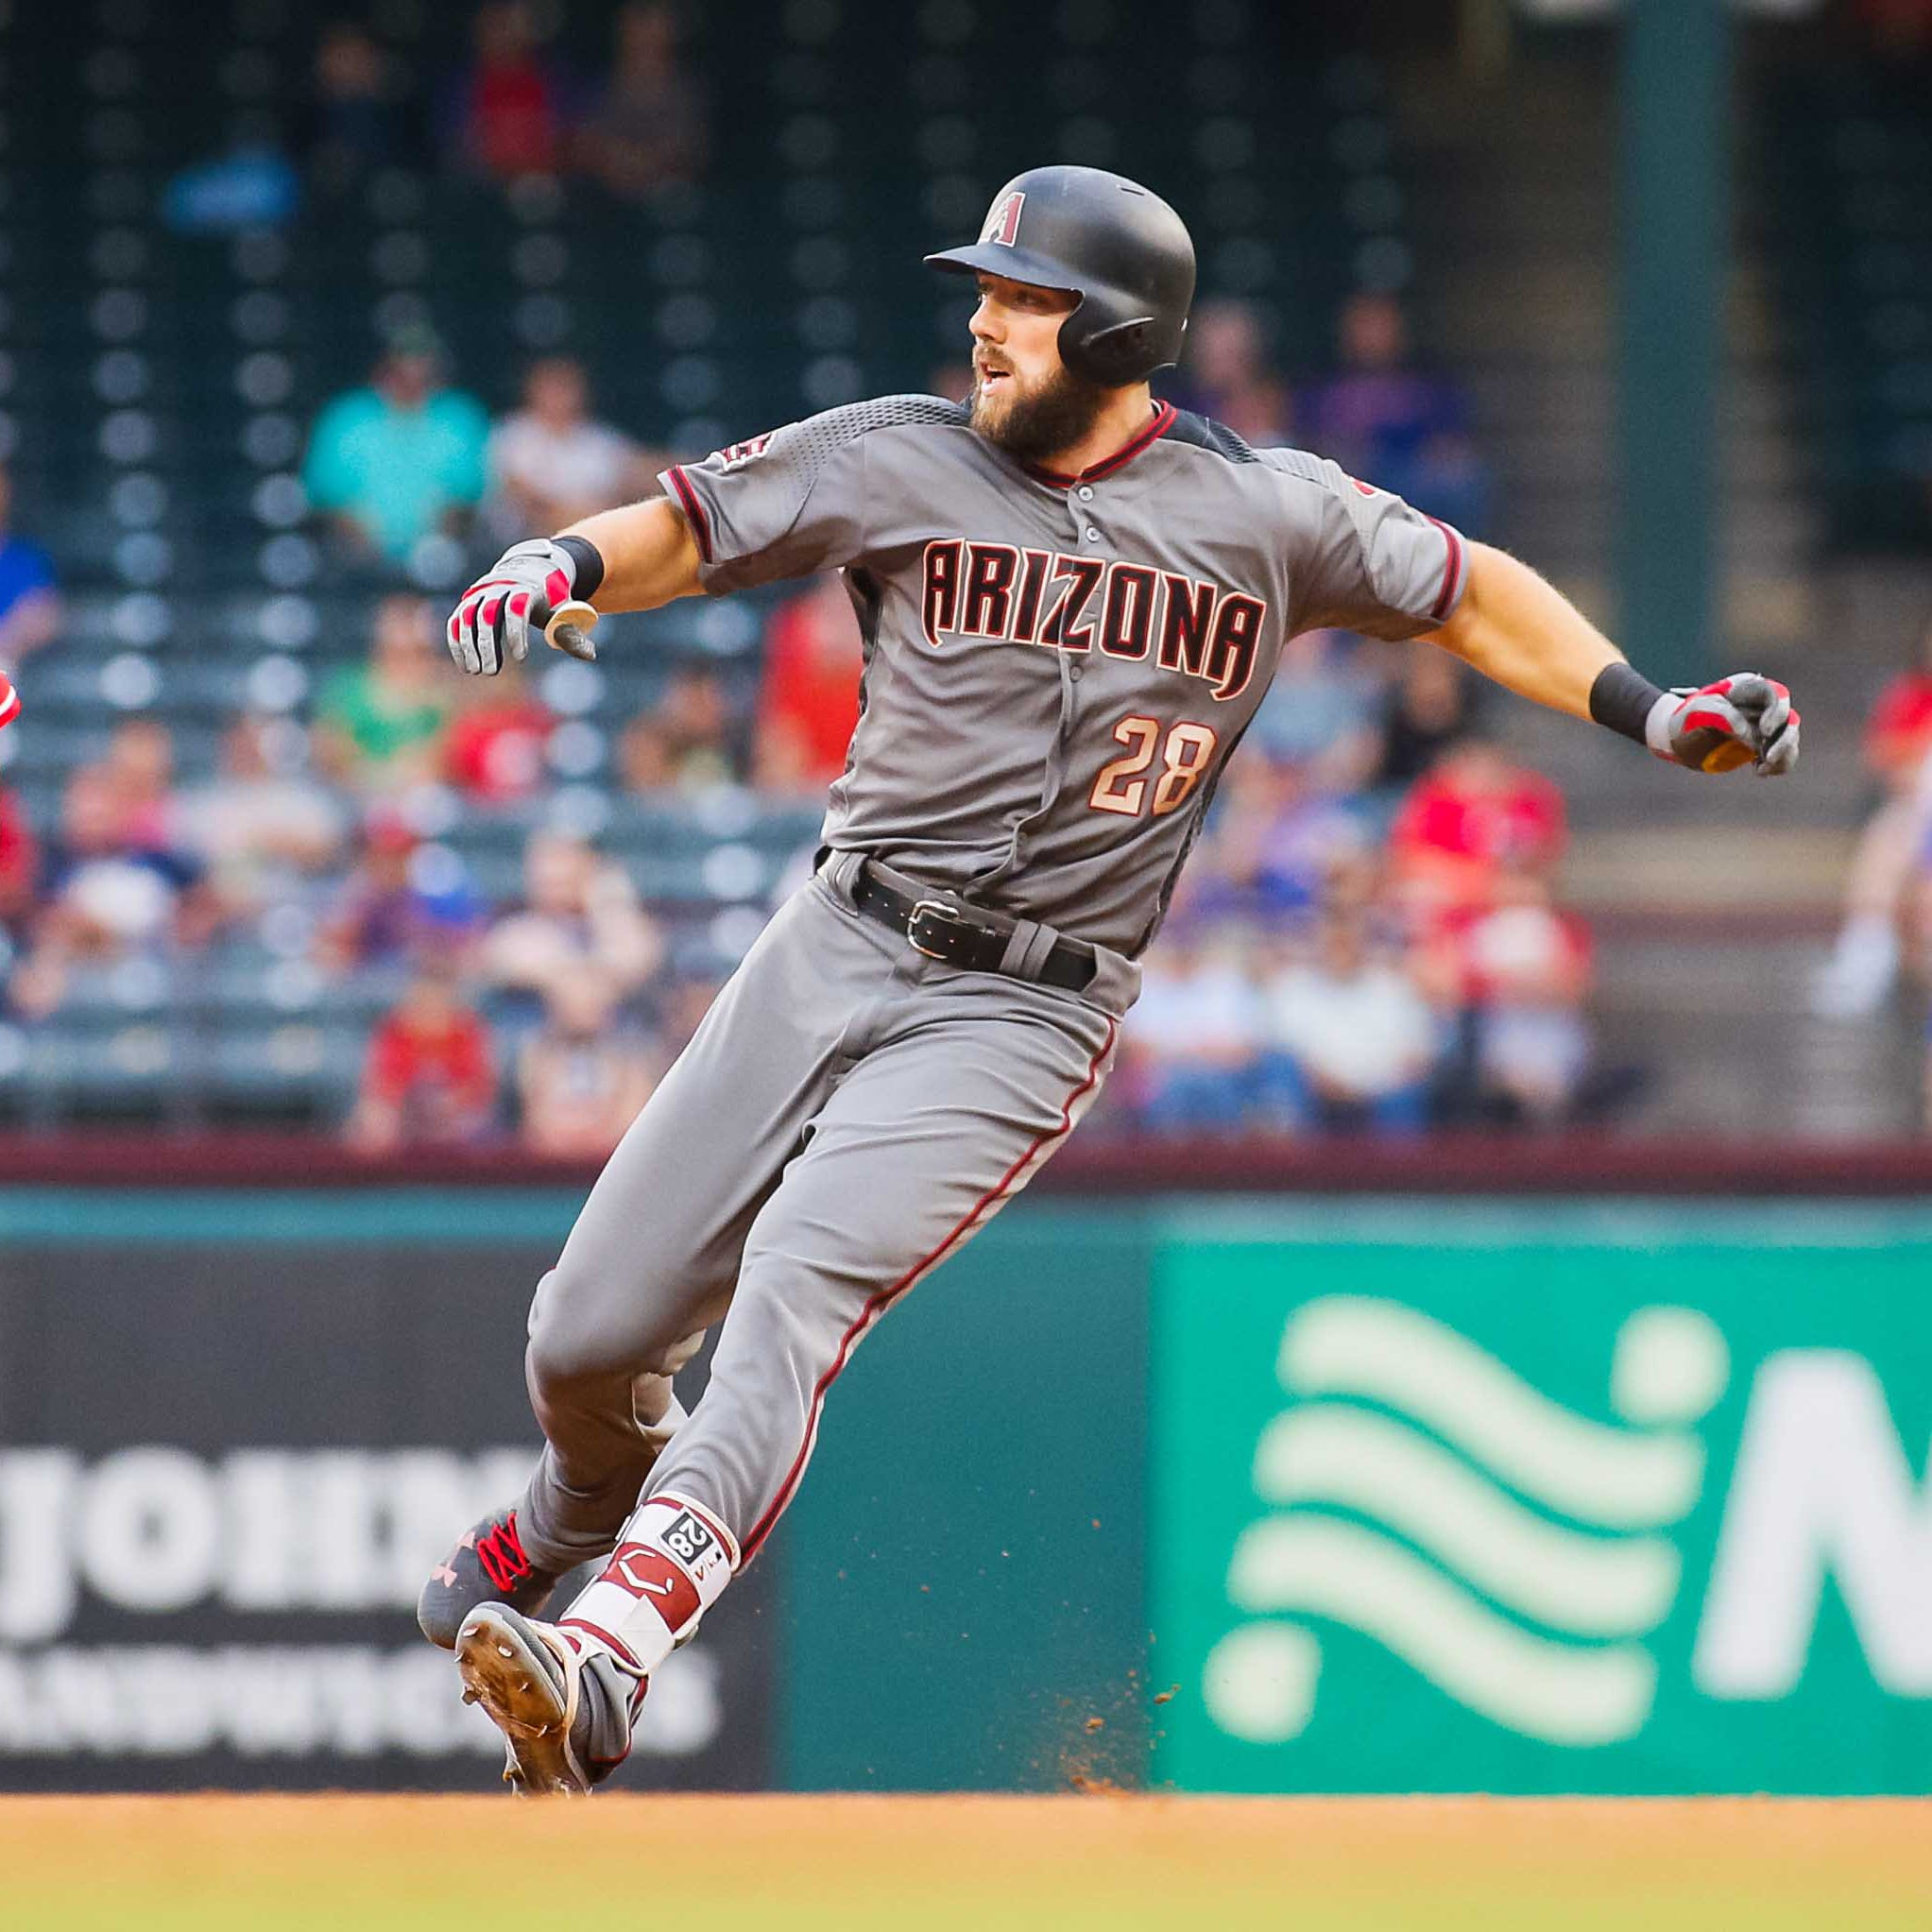 Diamondbacks frustrated after bats vanish again in loss to Rangers